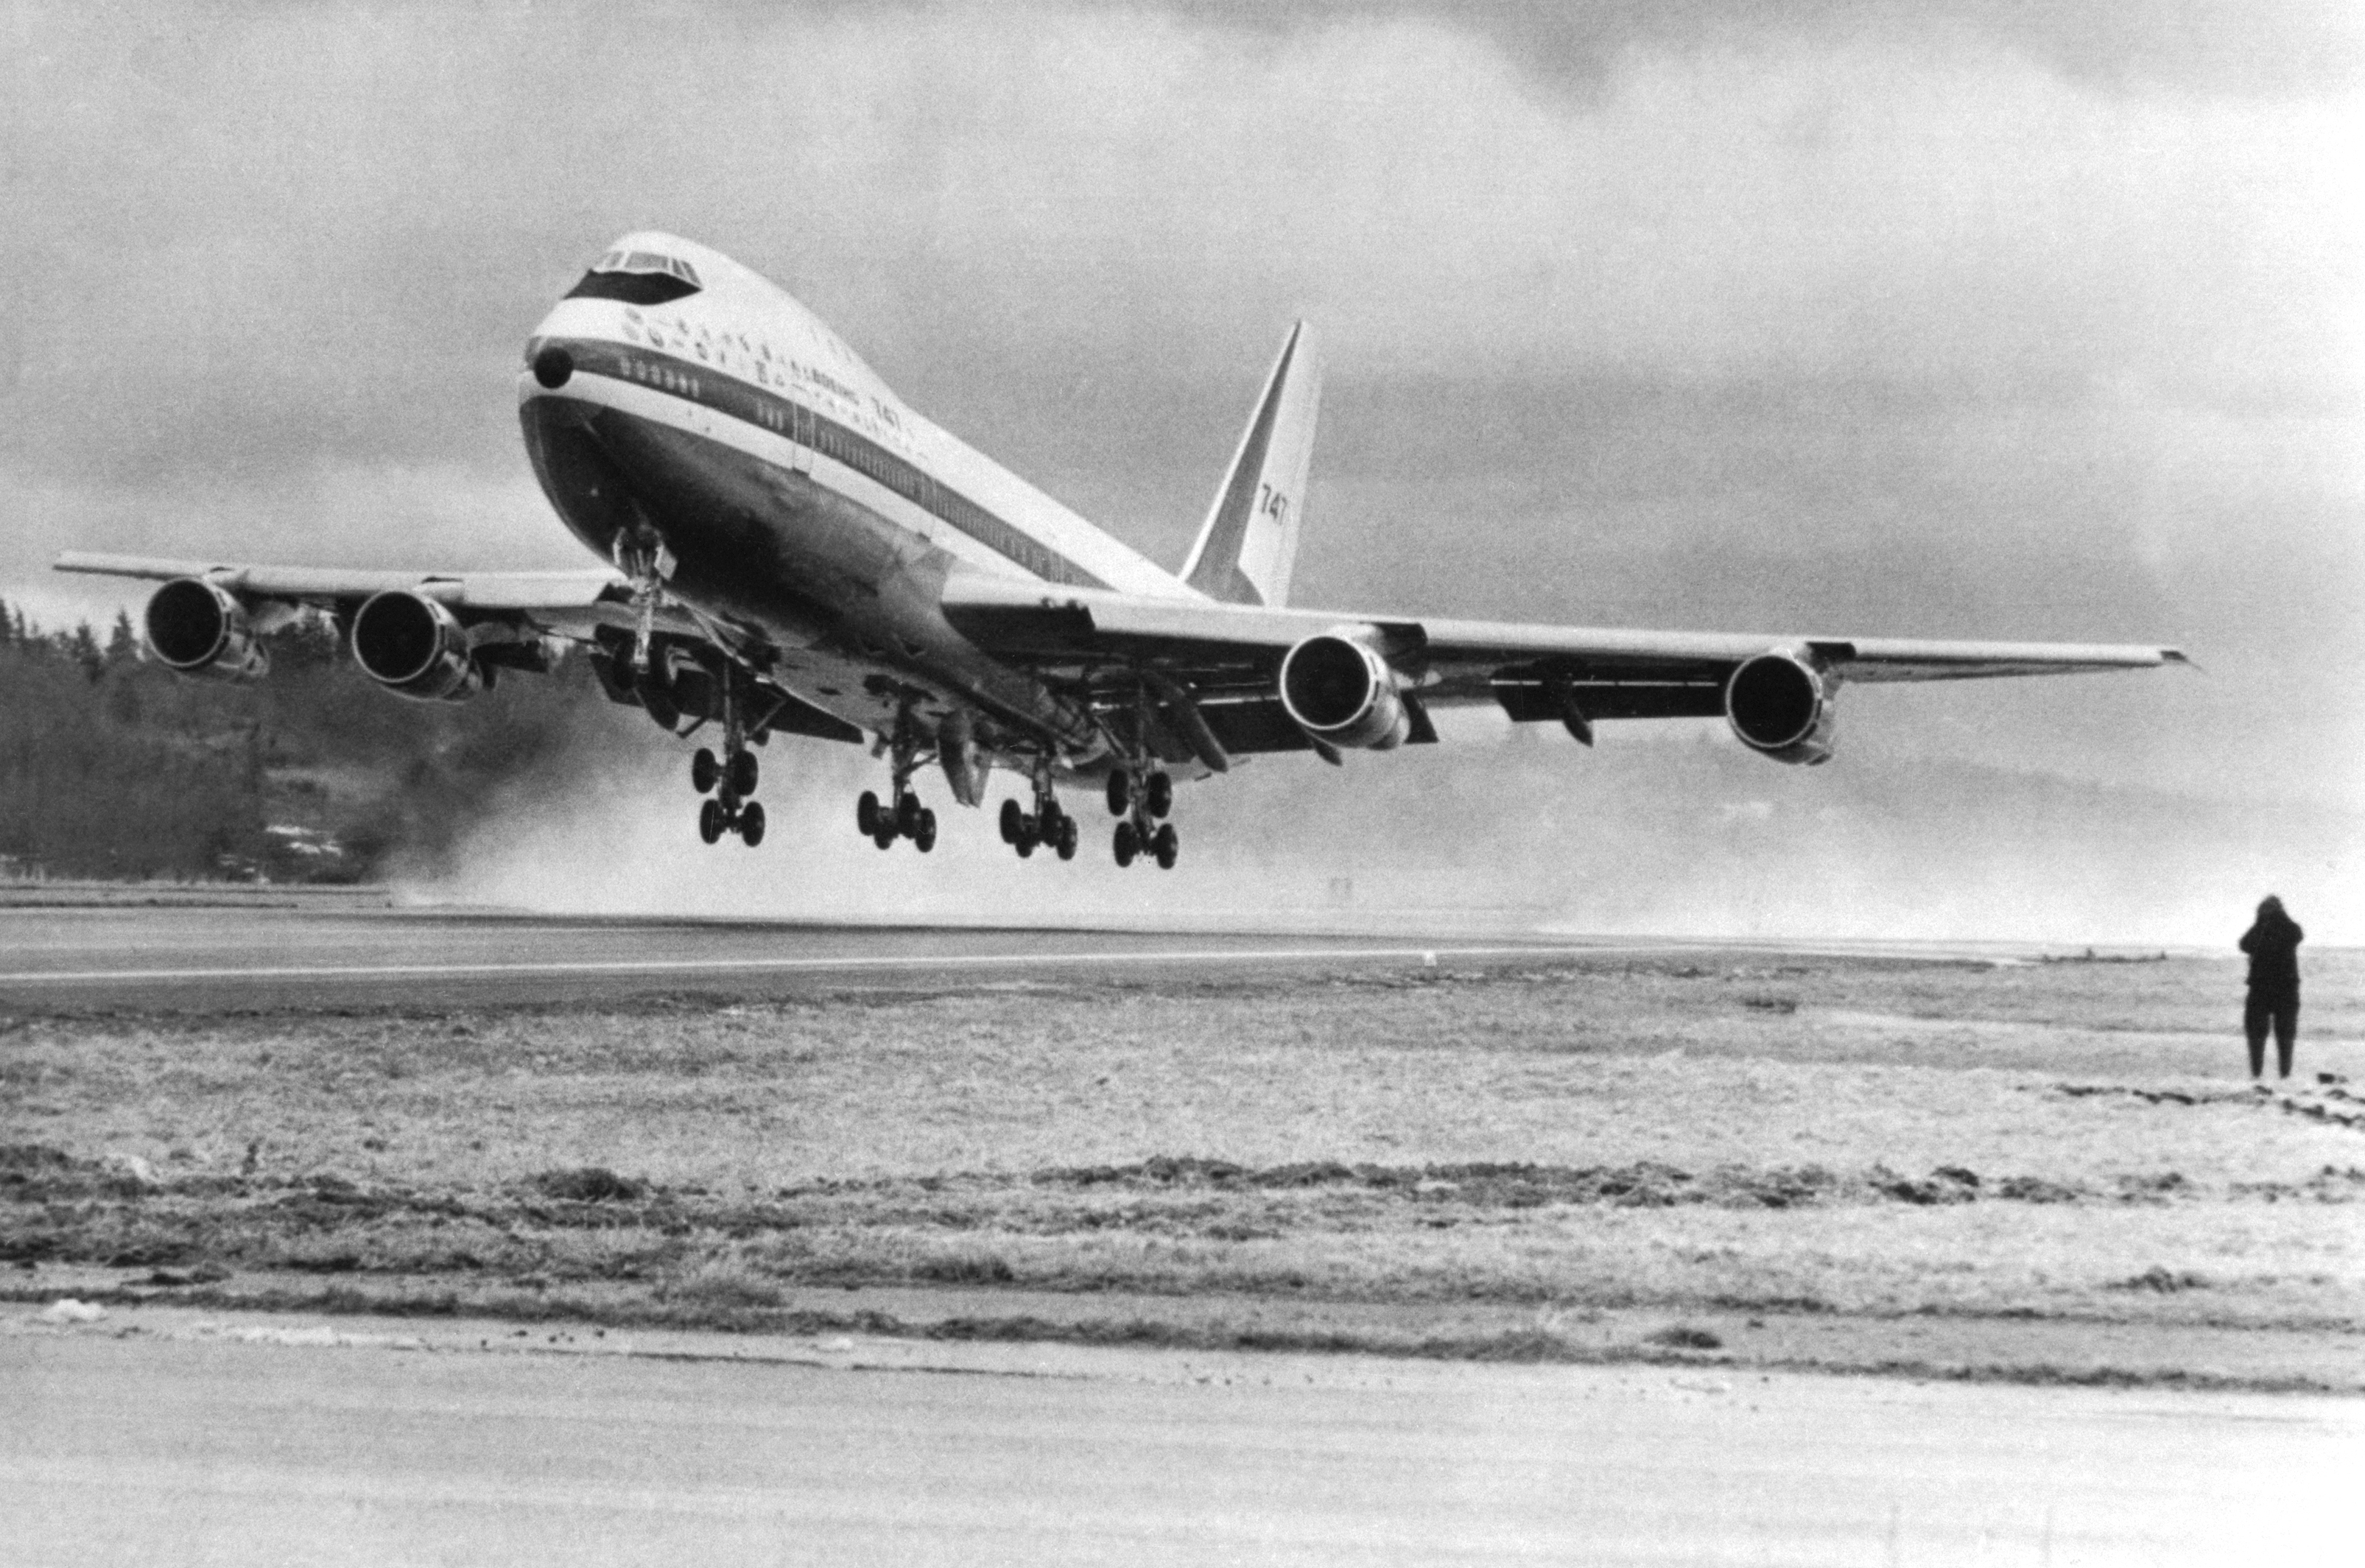 The world's largest commercial jetliner, the Boeing 747 makes its first takeoff 2/9. The 231 ft. jet used abut 4500 feet of runway and became airborne at a speed of about 170 MPH.